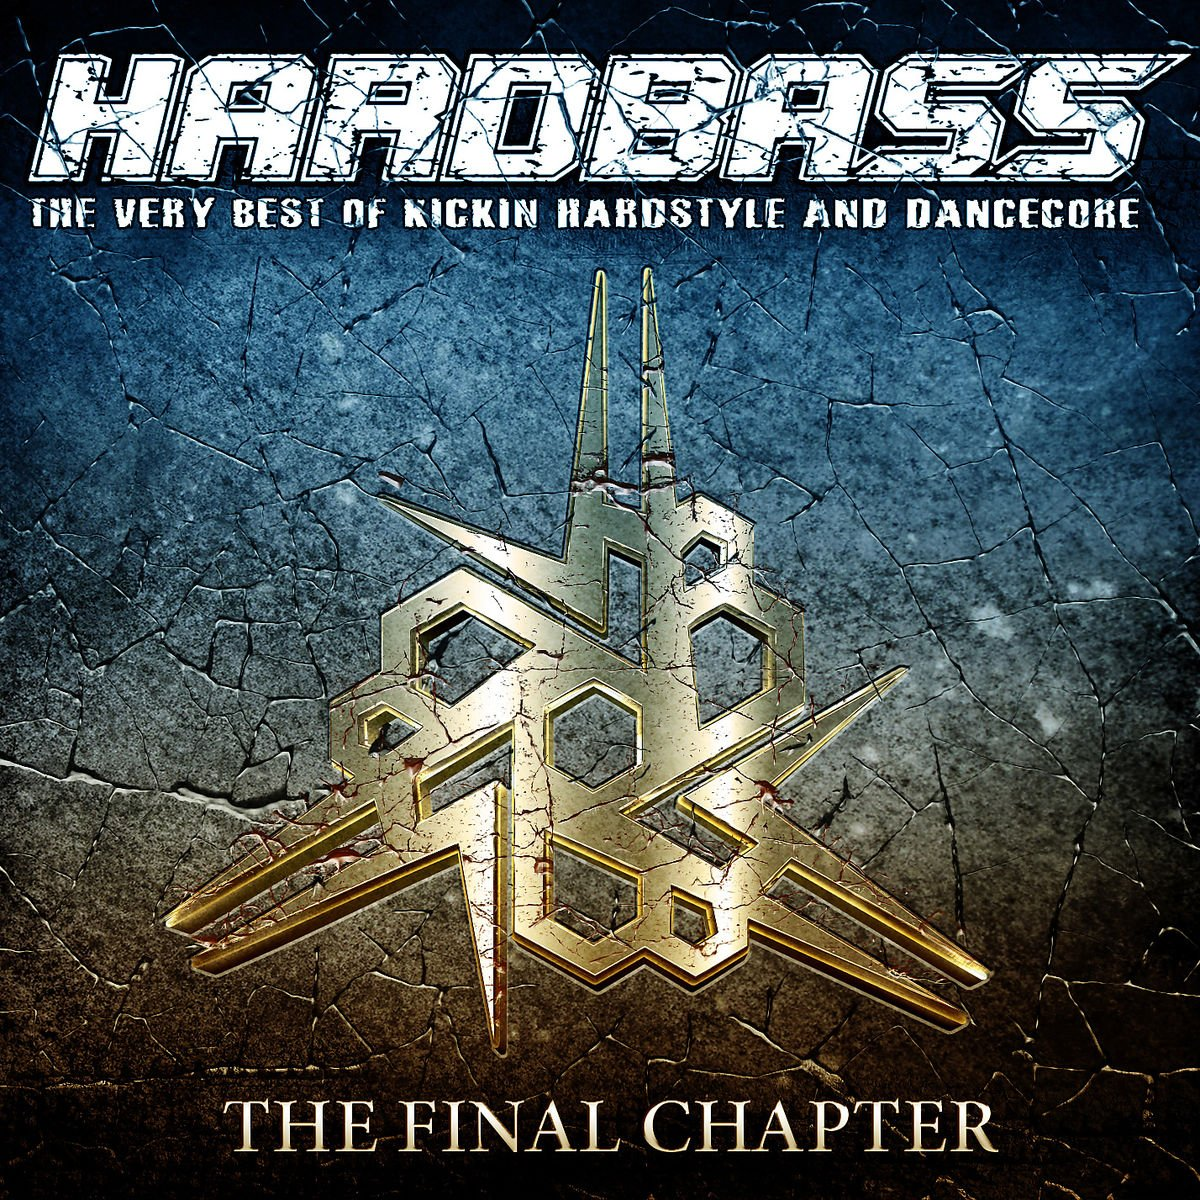 VA - Hardbass The Final Chapter - (06025 4778127 7) - 2CD - FLAC - 2016 - WRE Download